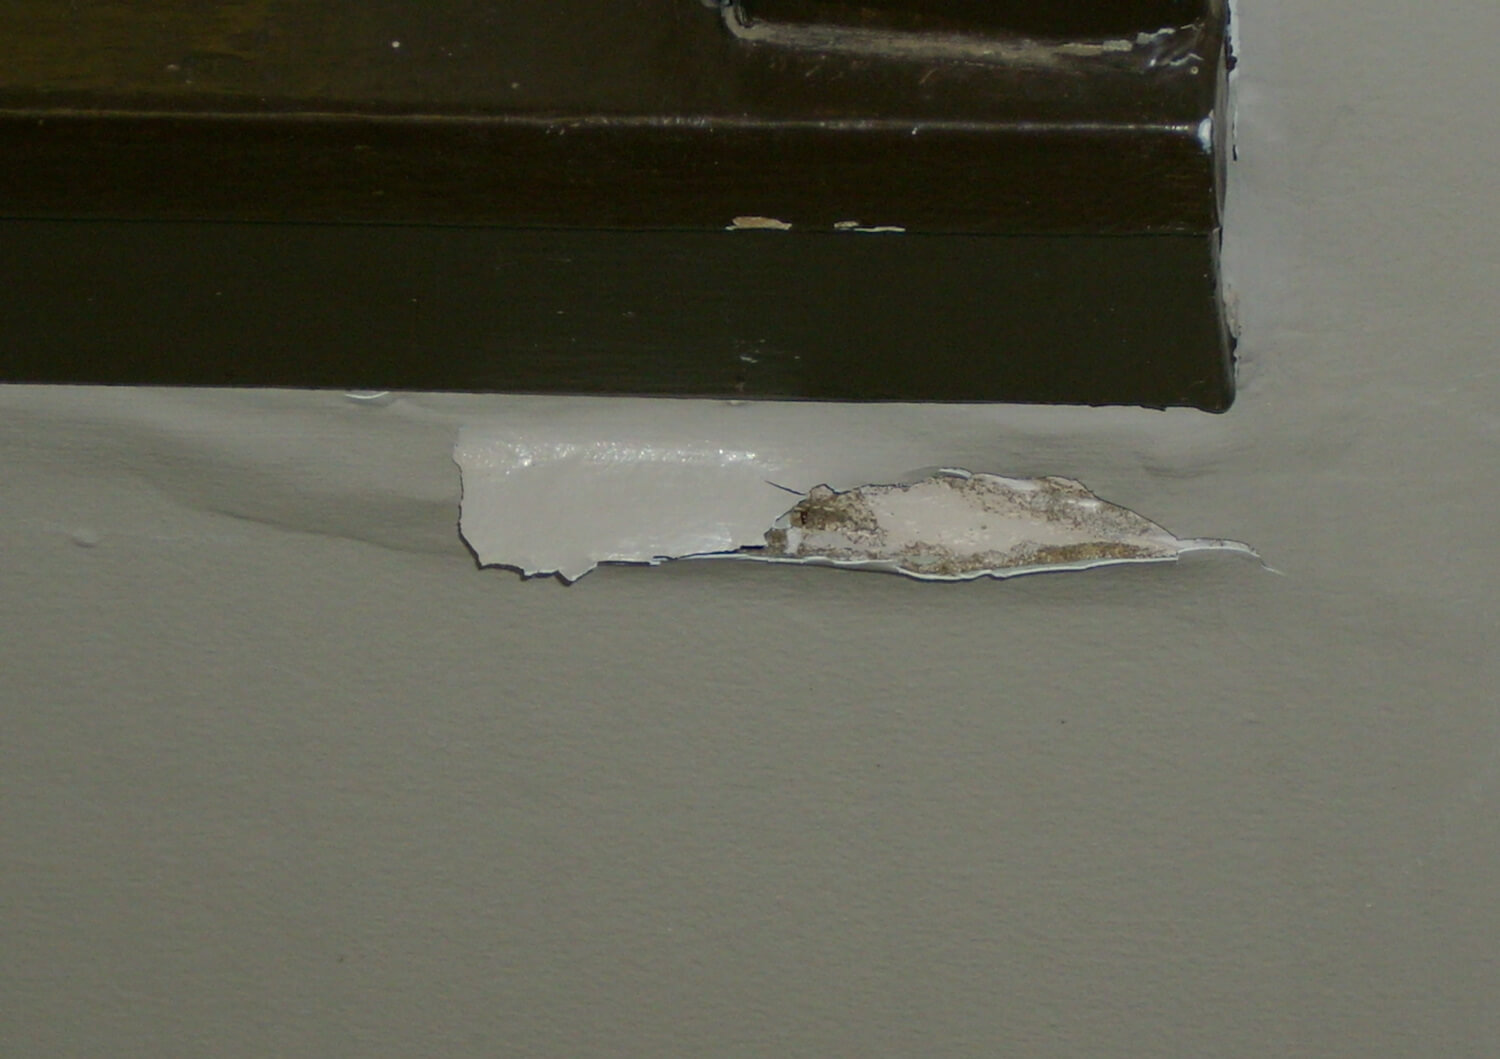 Drooping and sagging drywall from termite damage